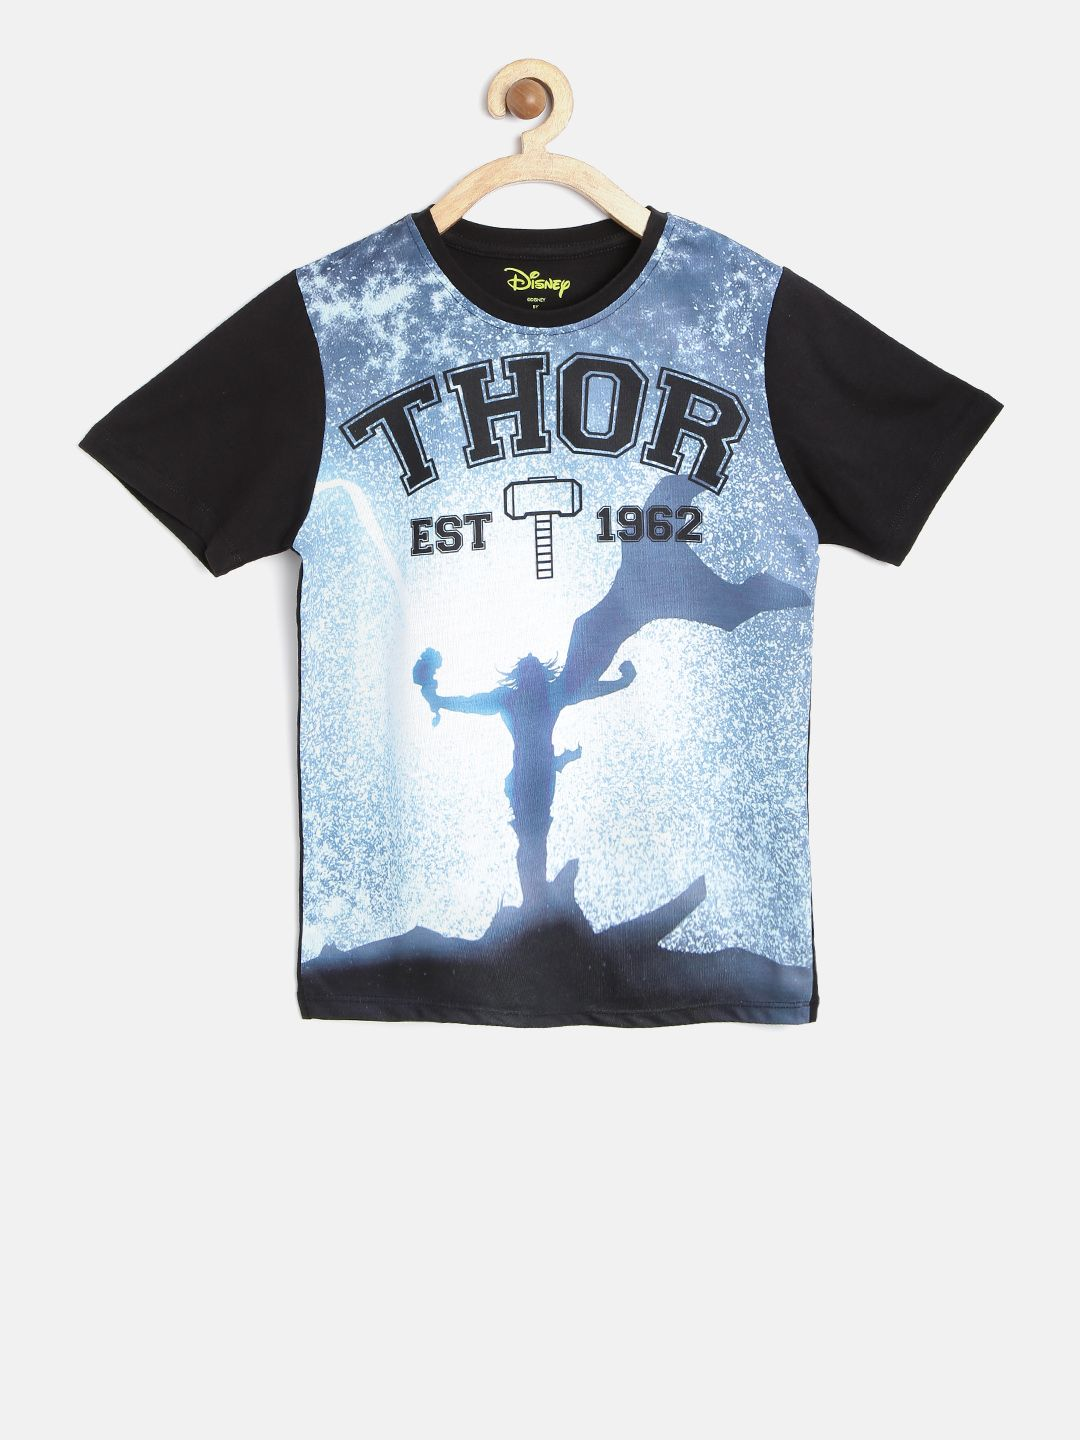 6a3a9b91 Product code: 1750205 | Sold by: Wiztech Corp YK Marvel Boys Blue & Black  Thor Print Round Neck T-shirt from Myntra.